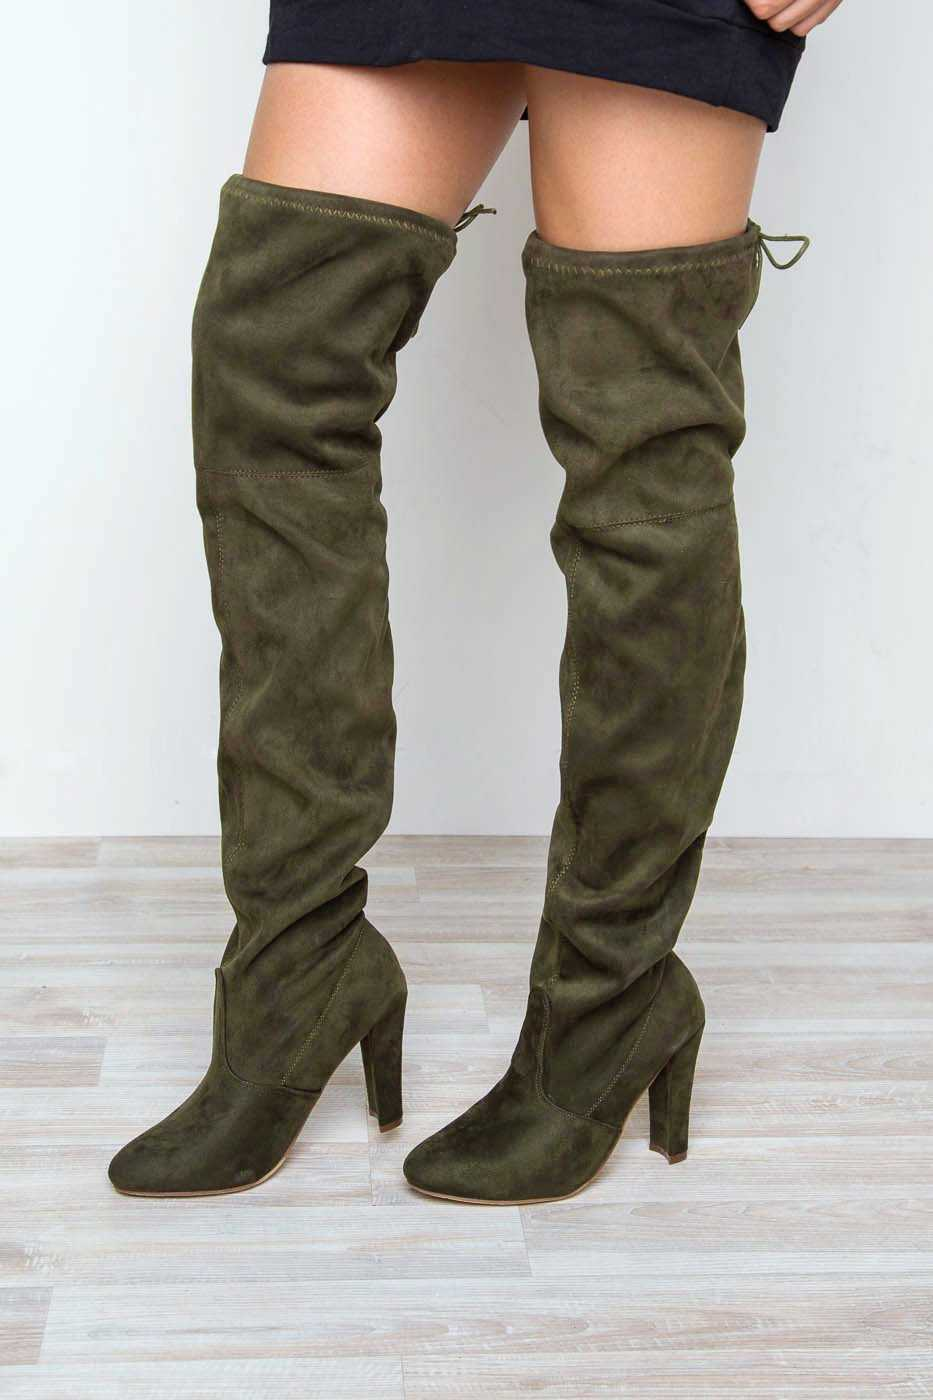 f1c07a8363622 Showdown Thigh High Boots - Olive | In Touch Footwear